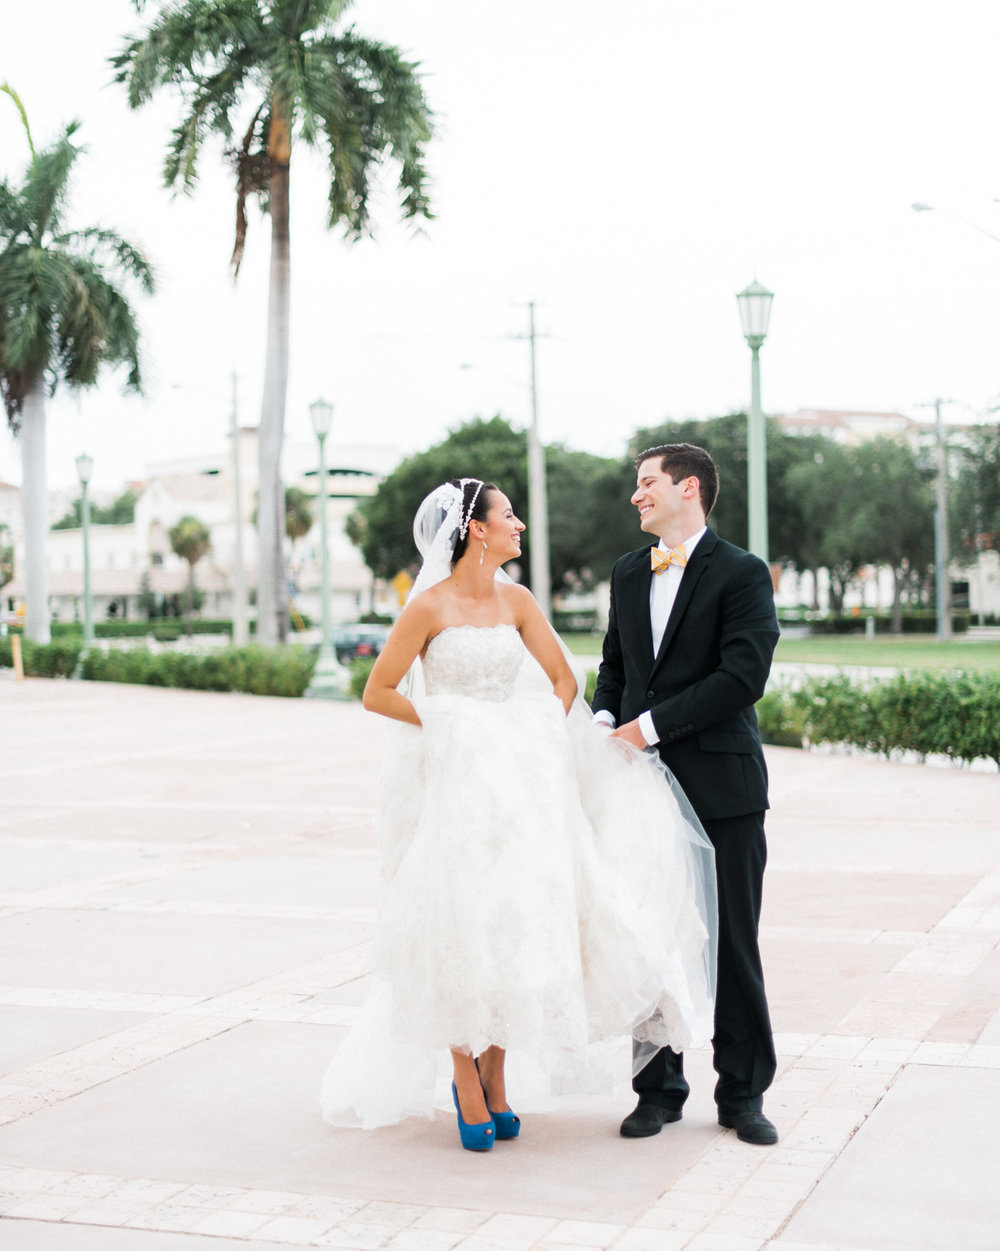 Charlottesville_Miami_Film_Wedding_Photographer-52.jpg